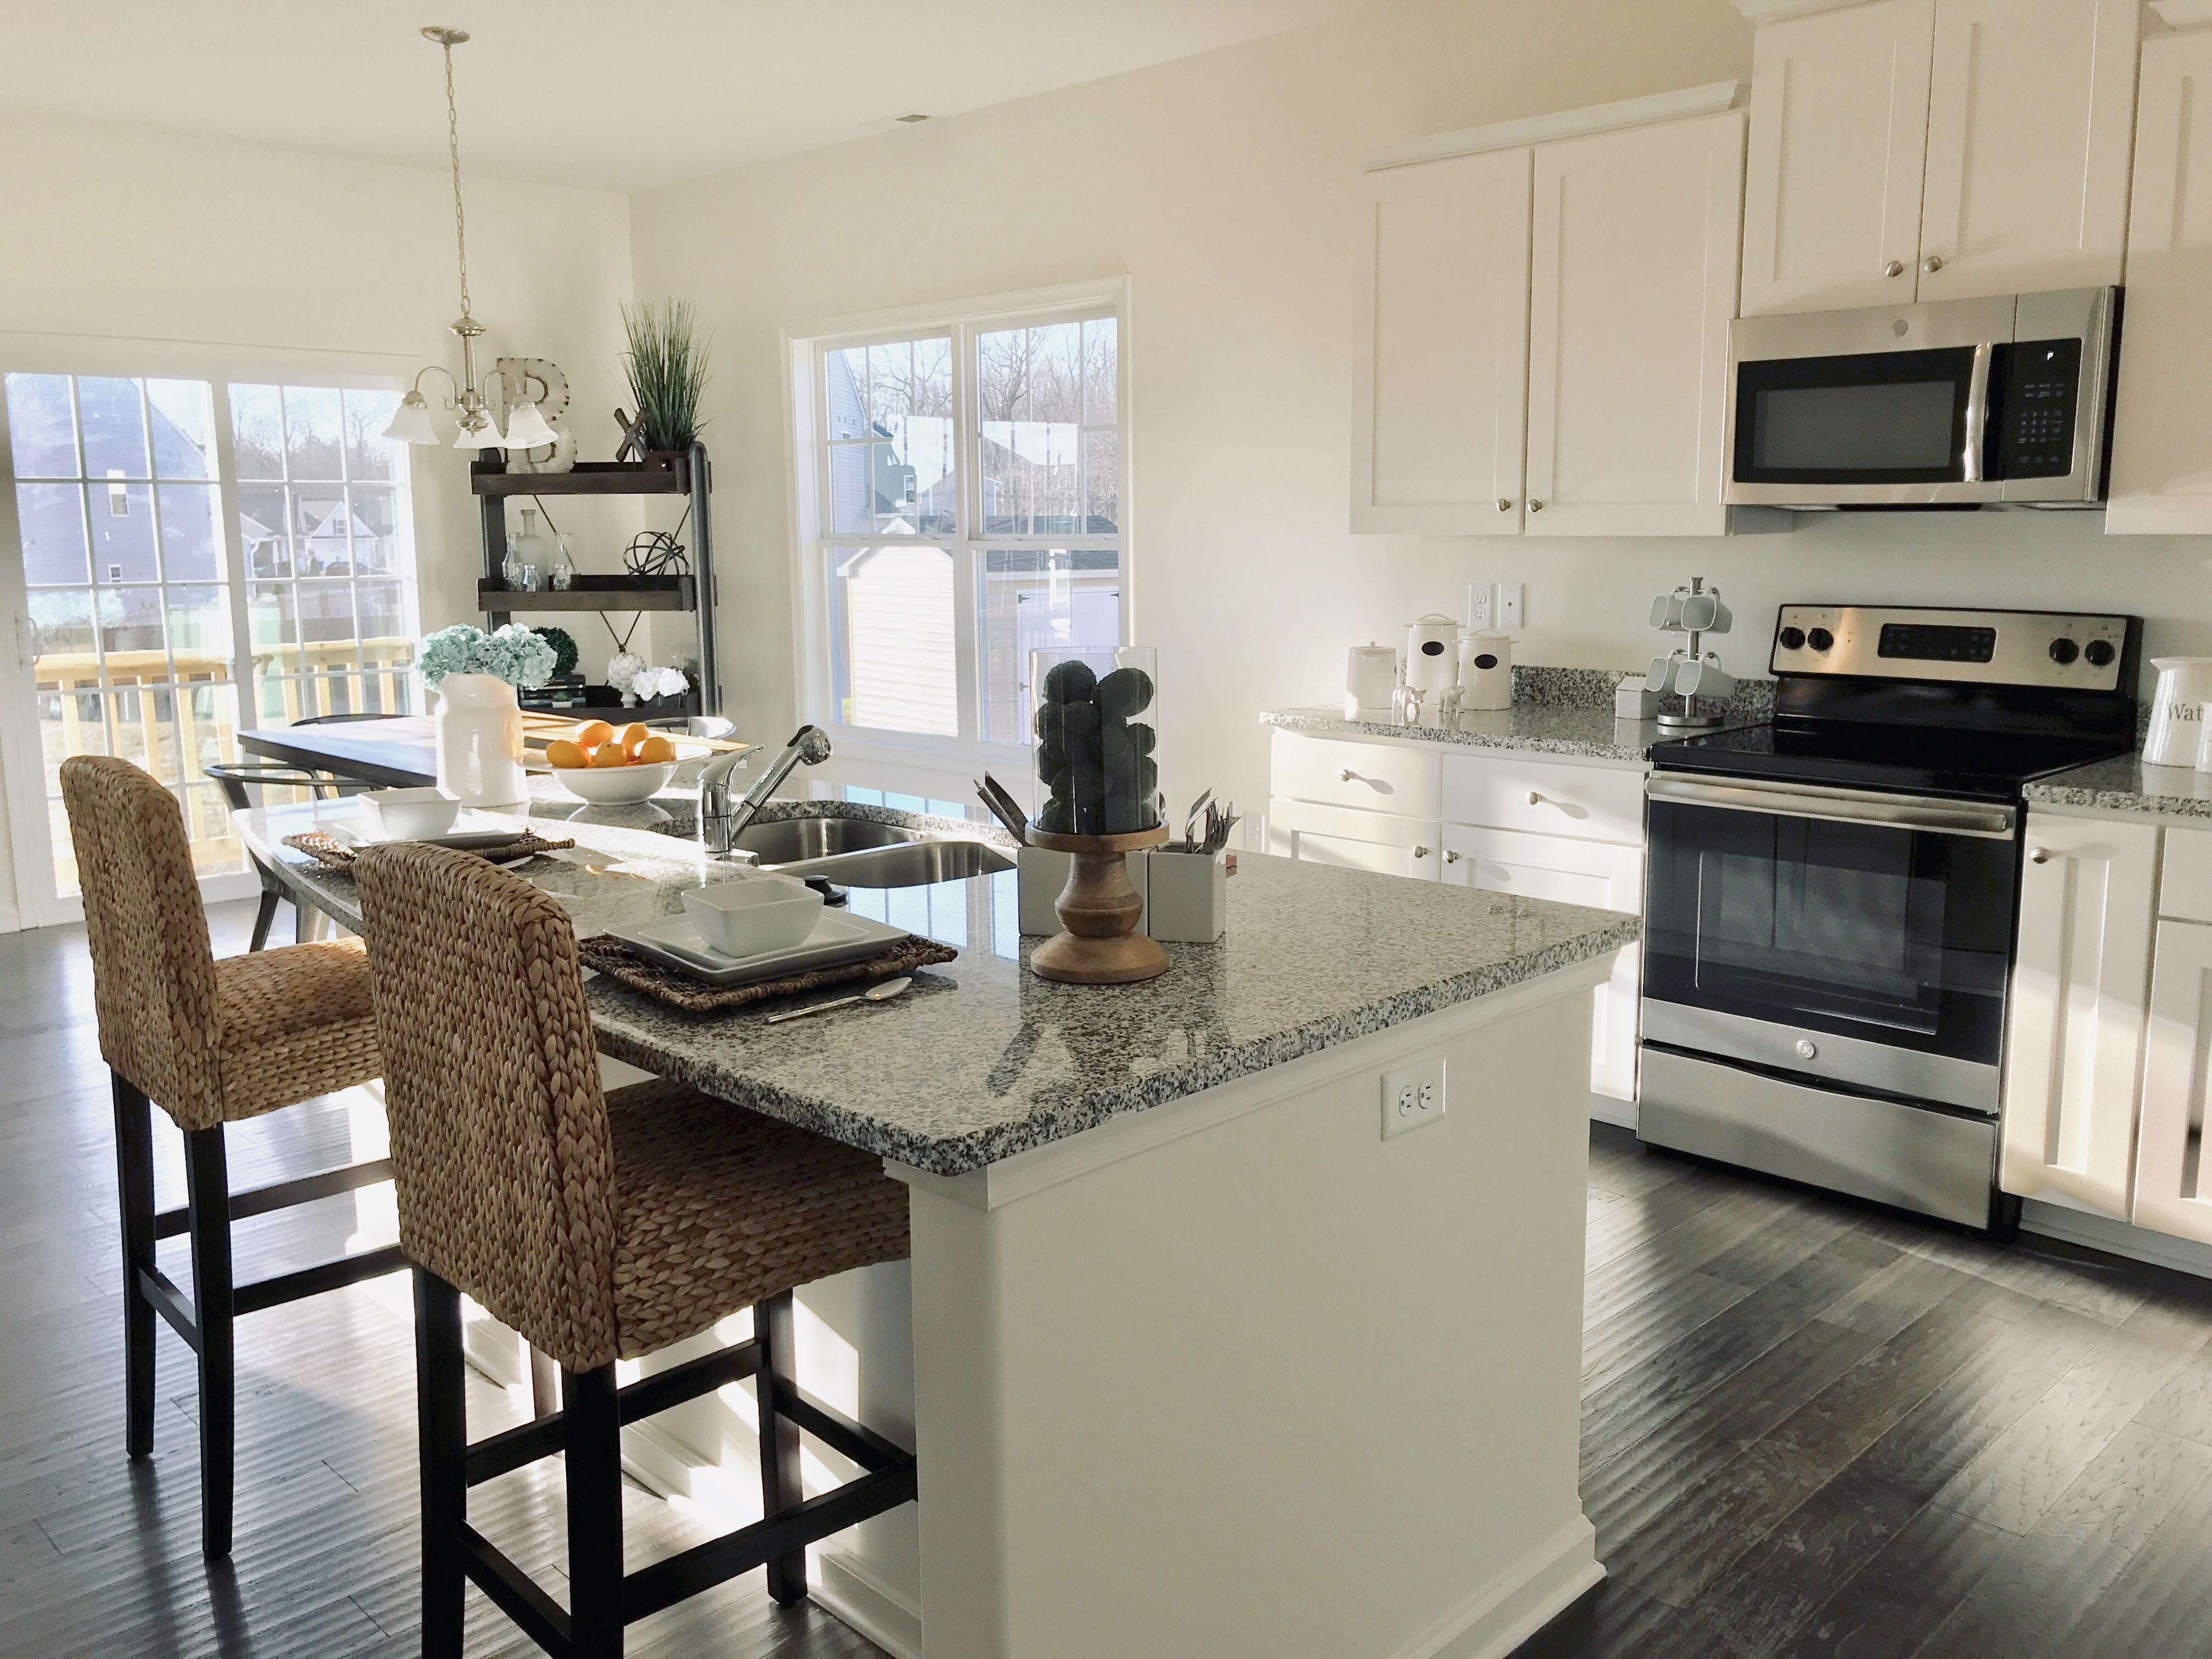 Kitchen featured in The Elmsted 5 Bedroom By Boyd Homes in Richmond-Petersburg, VA